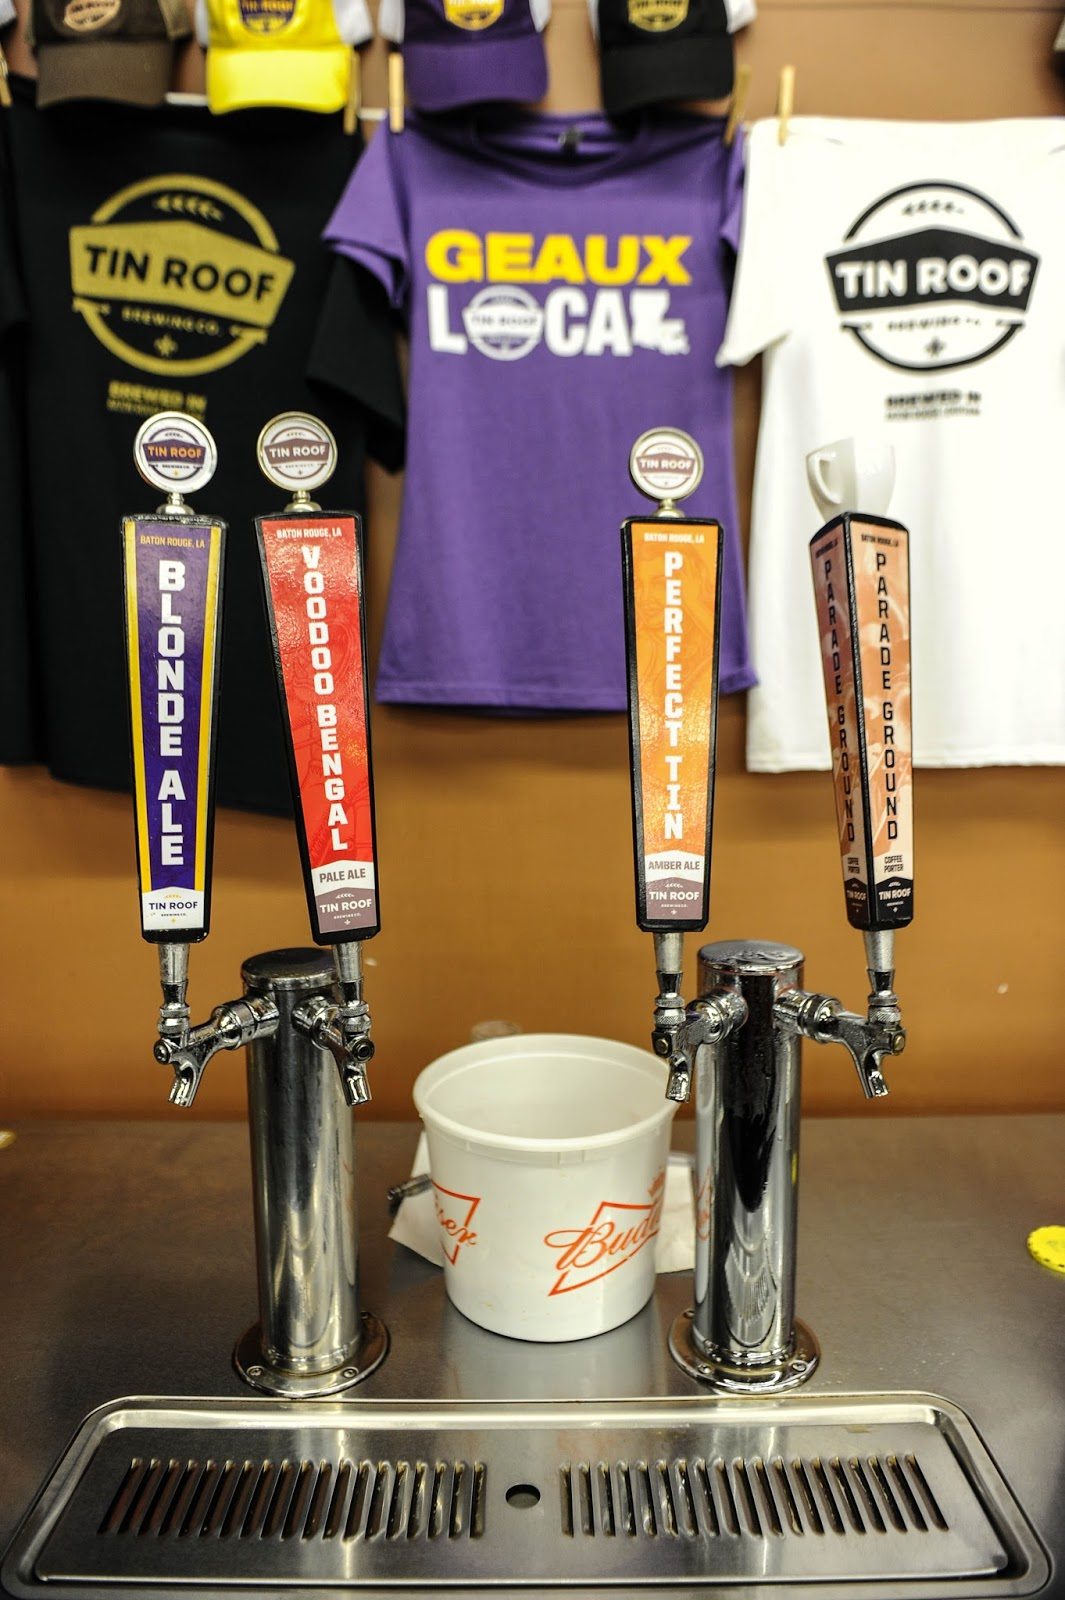 Geaux Local At Tin Roof Brewery